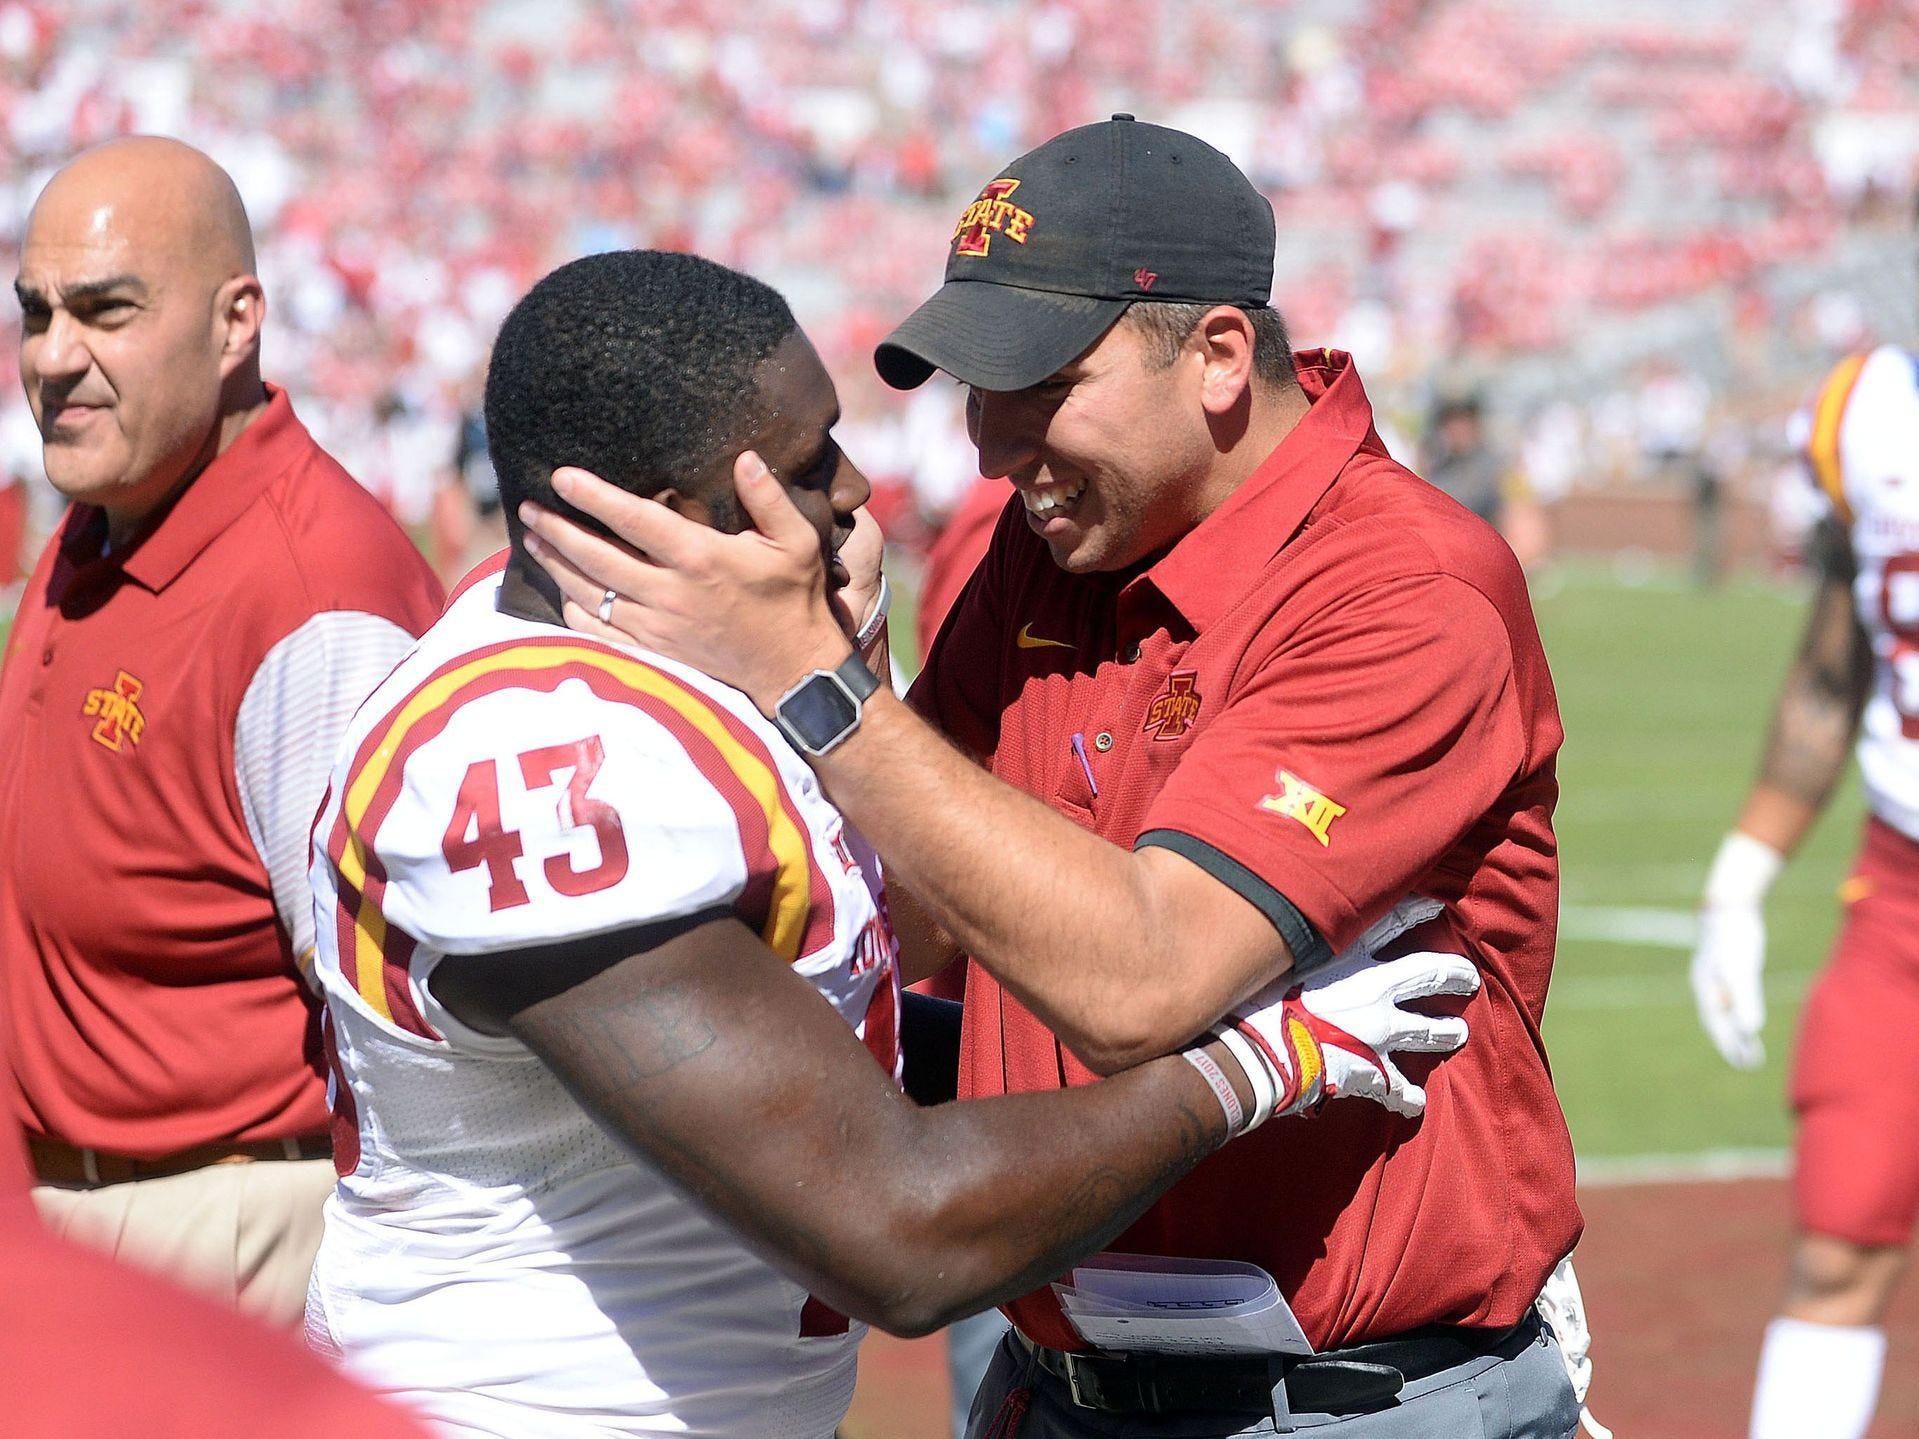 Coach Matt Campbell (right) celebrates a win over Oklahoma with one of his players last season